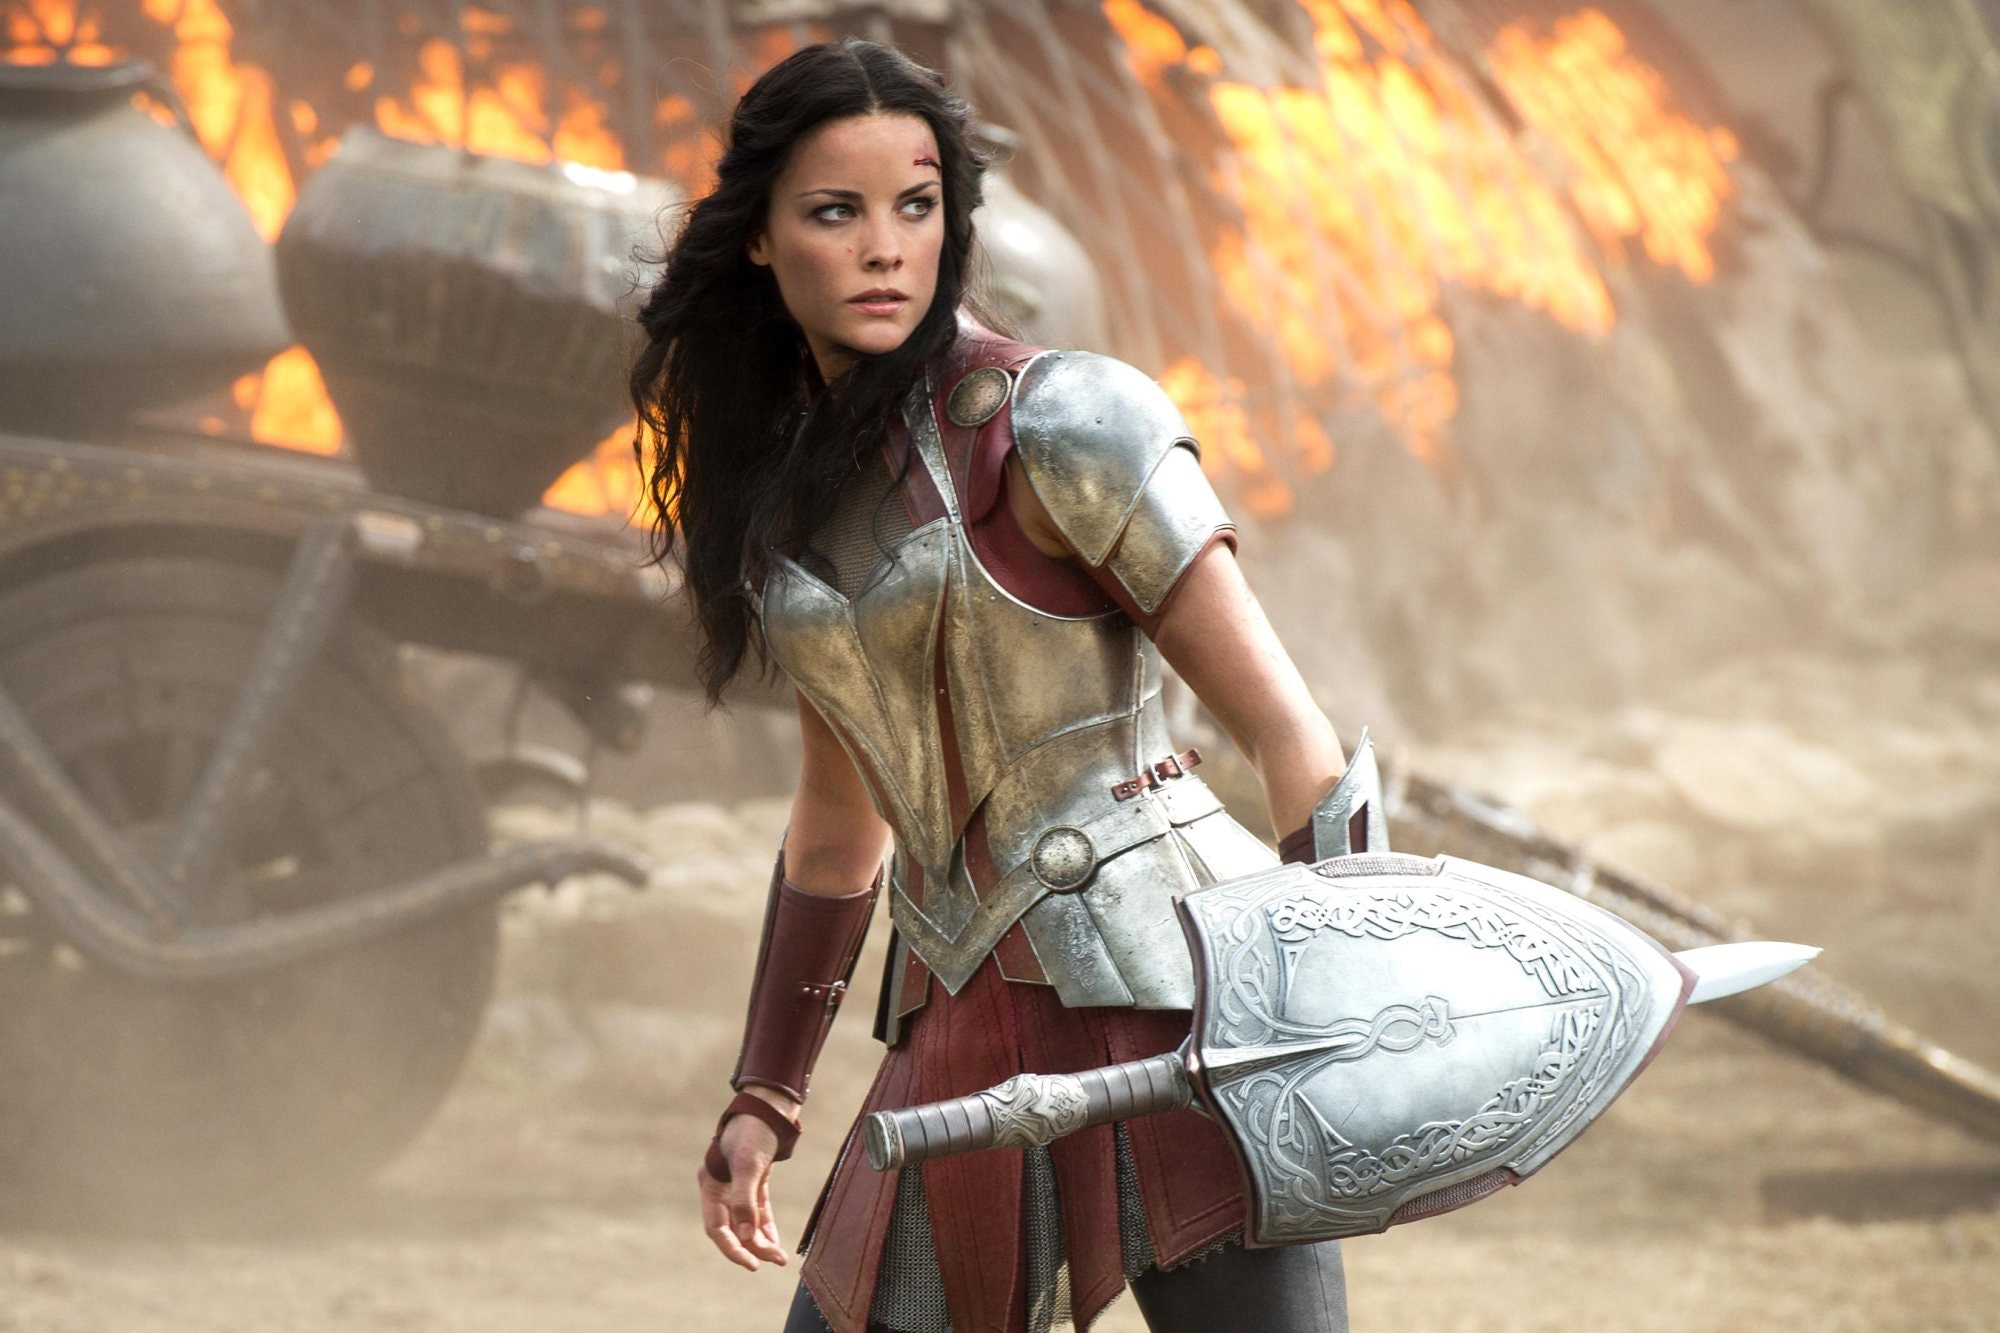 https://imgix.bustle.com/inverse/10/09/71/1e/06c2/4c88/b402/e3374f8abf46/jamie-alexander-as-sif-in-thor-the-dark-world-who-has-gone-entirely-missing-in-thor-ragnarok.jpeg